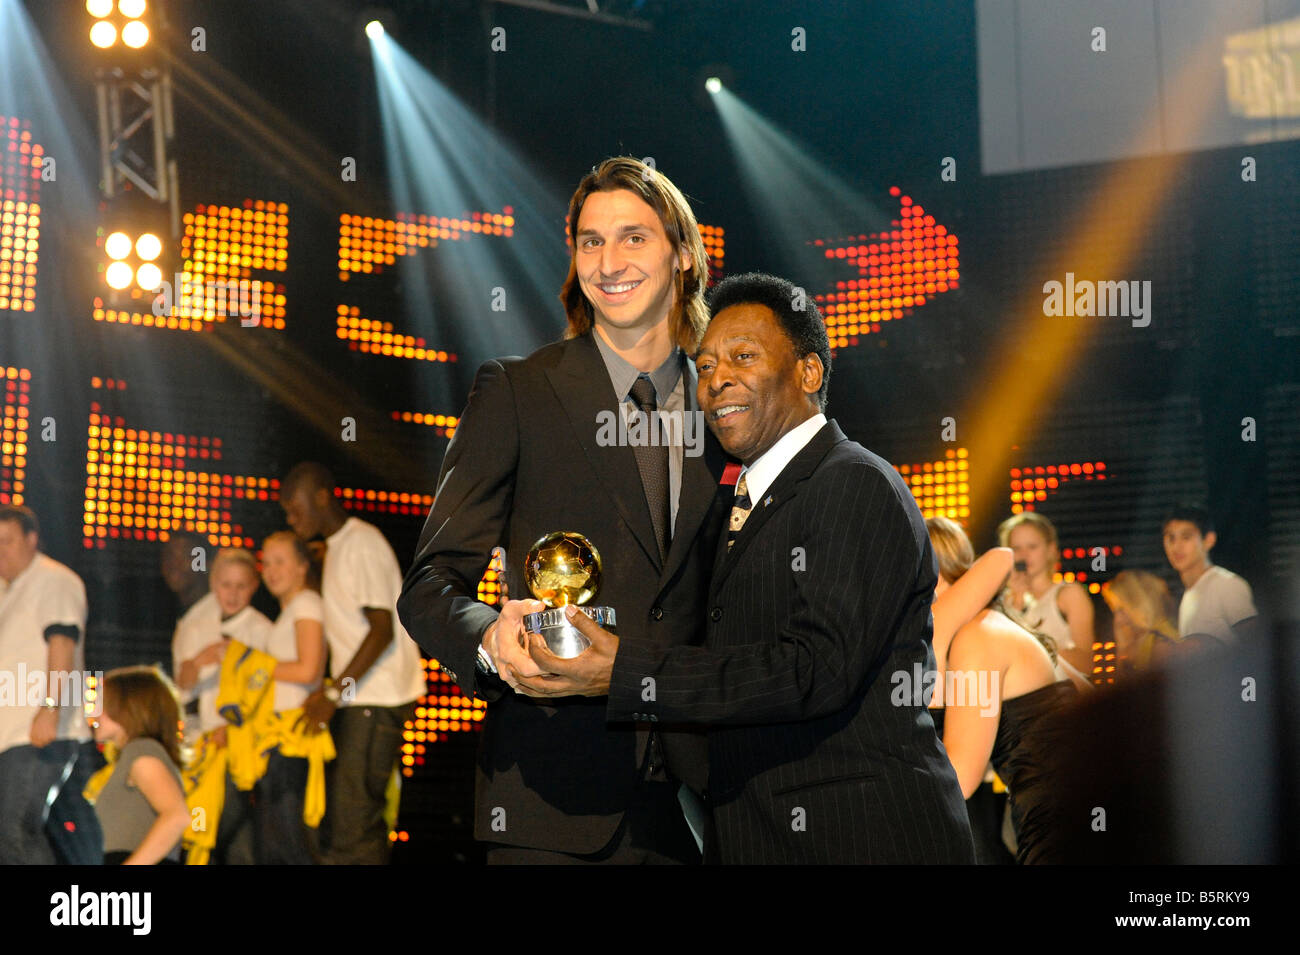 footballer-zlatan-ibrahimovic-receives-the-prize-the-golden-ball-as-B5RKY9.jpg